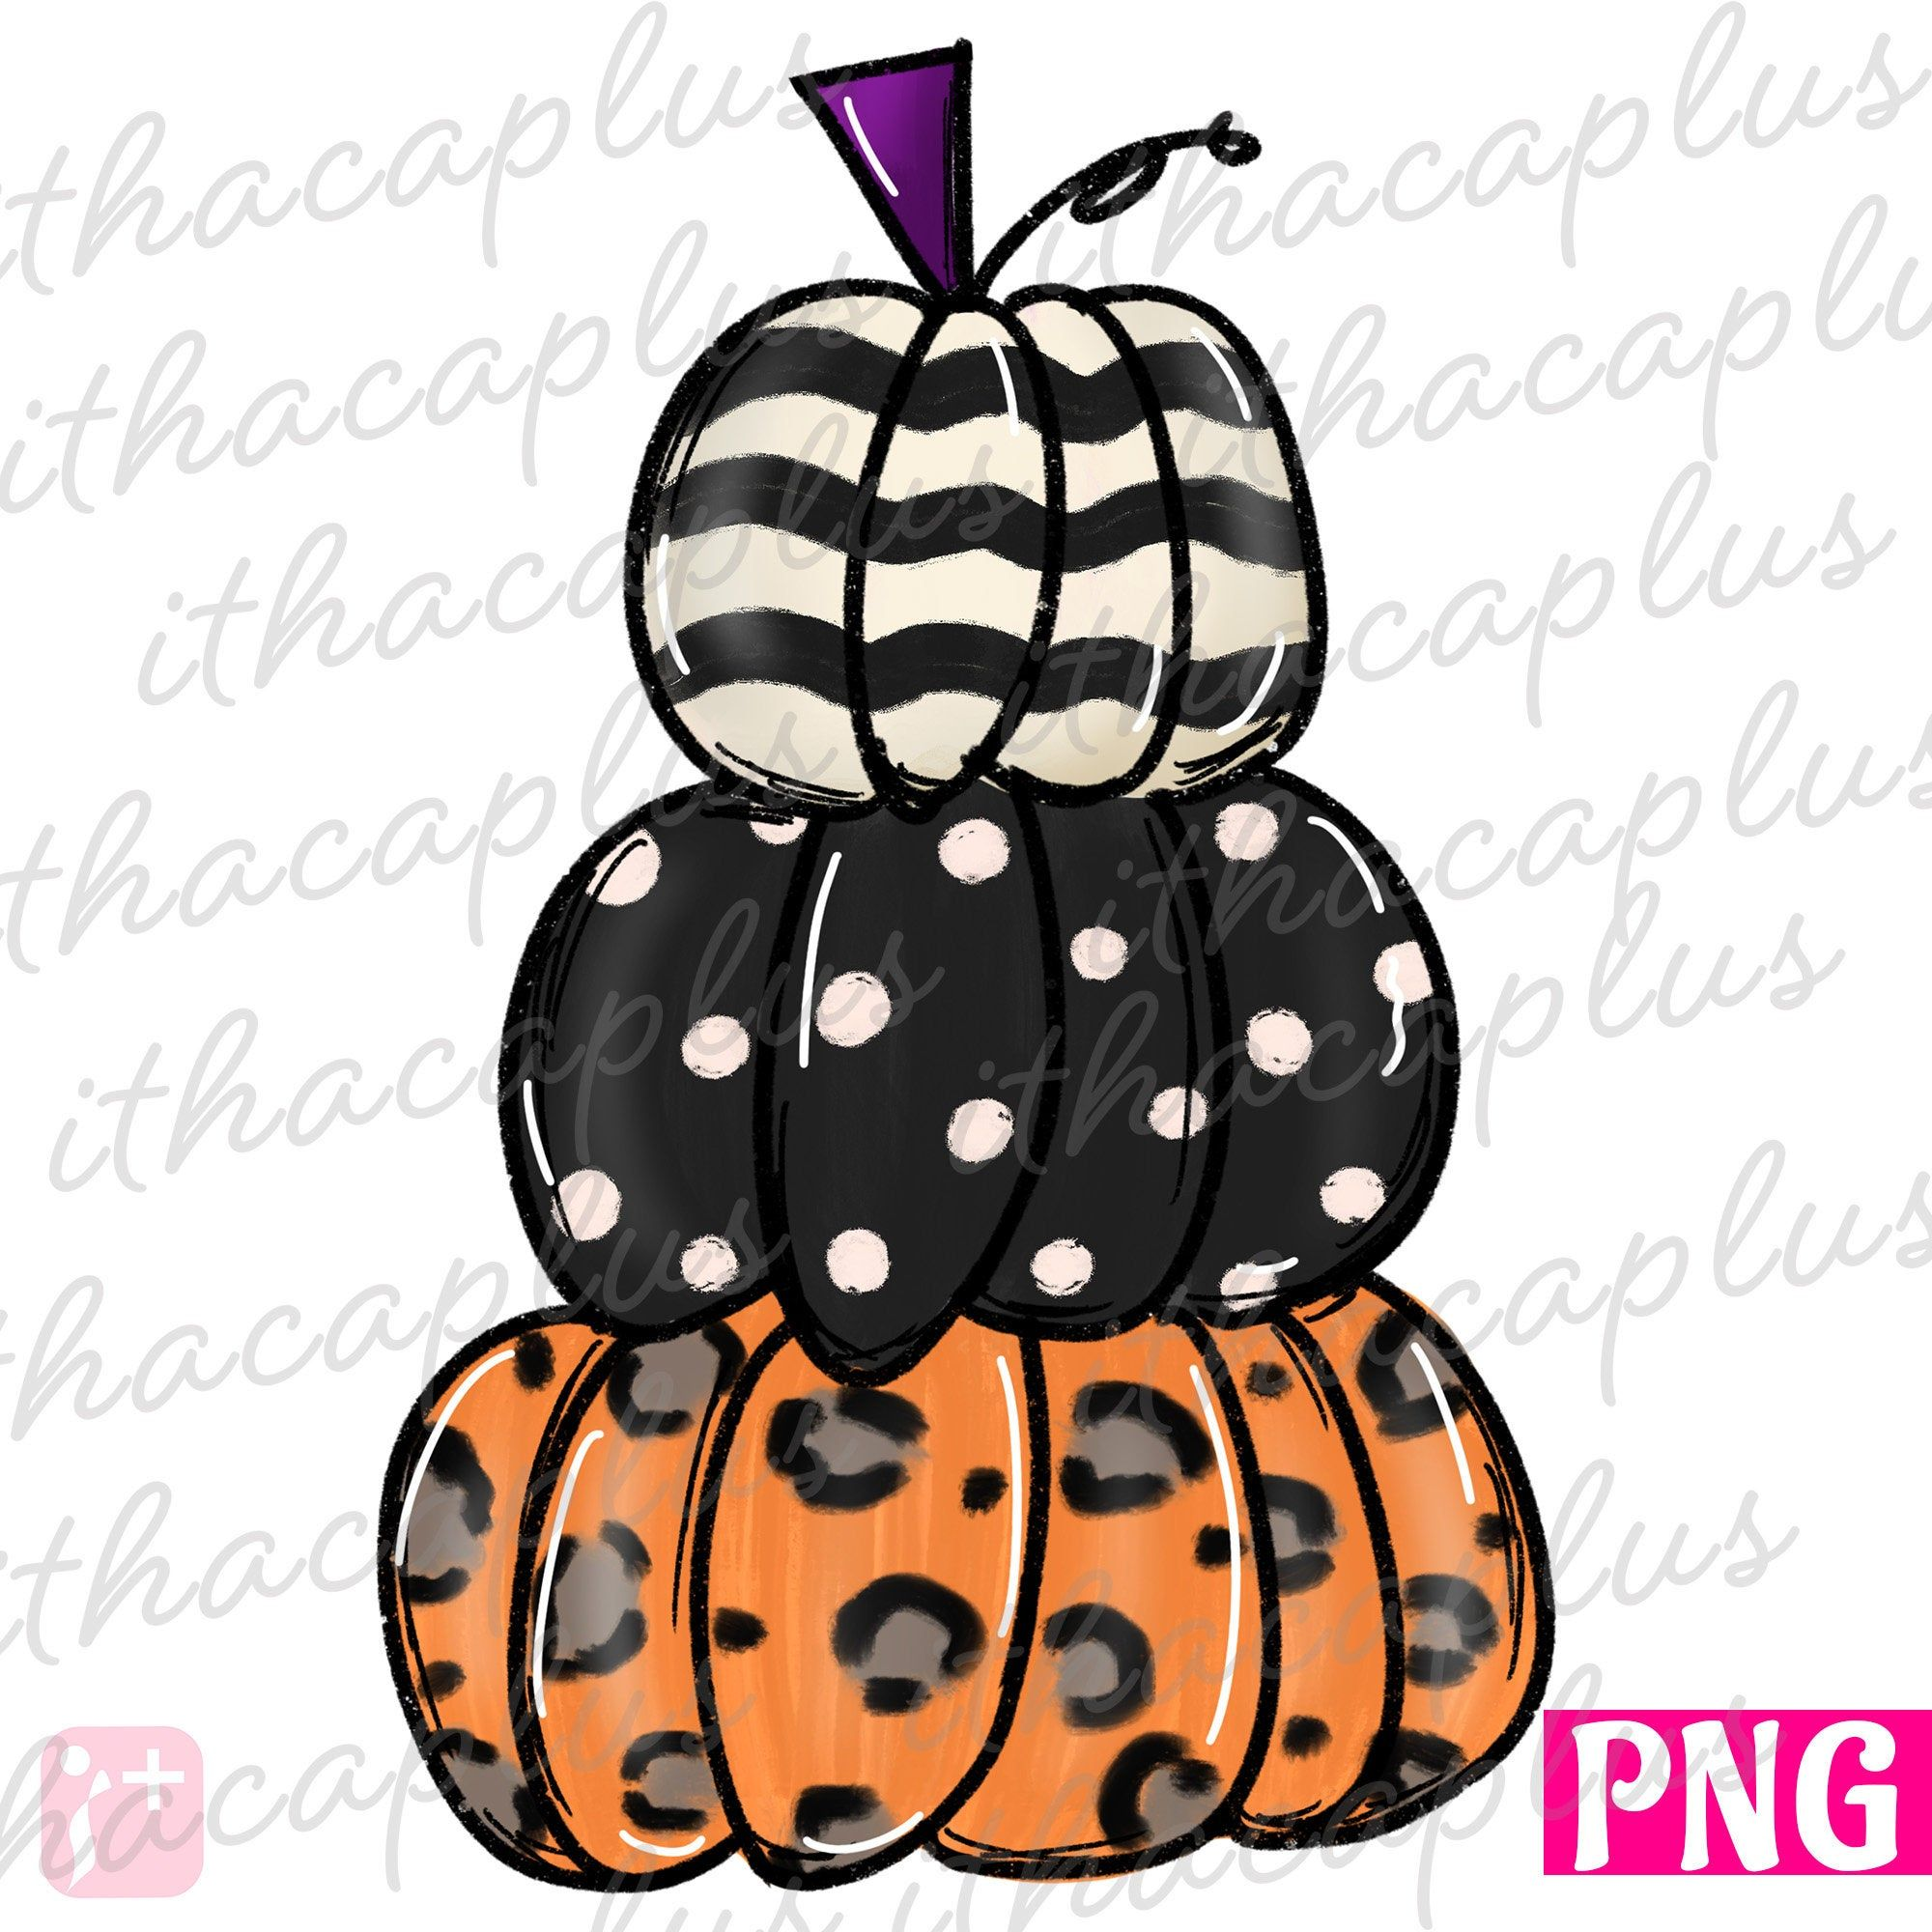 Halloween Png Halloween Pumpkin Png Halloween Sublimation Etsy In 2020 Fall Arts And Crafts Fall Halloween Decor Nifty Crafts